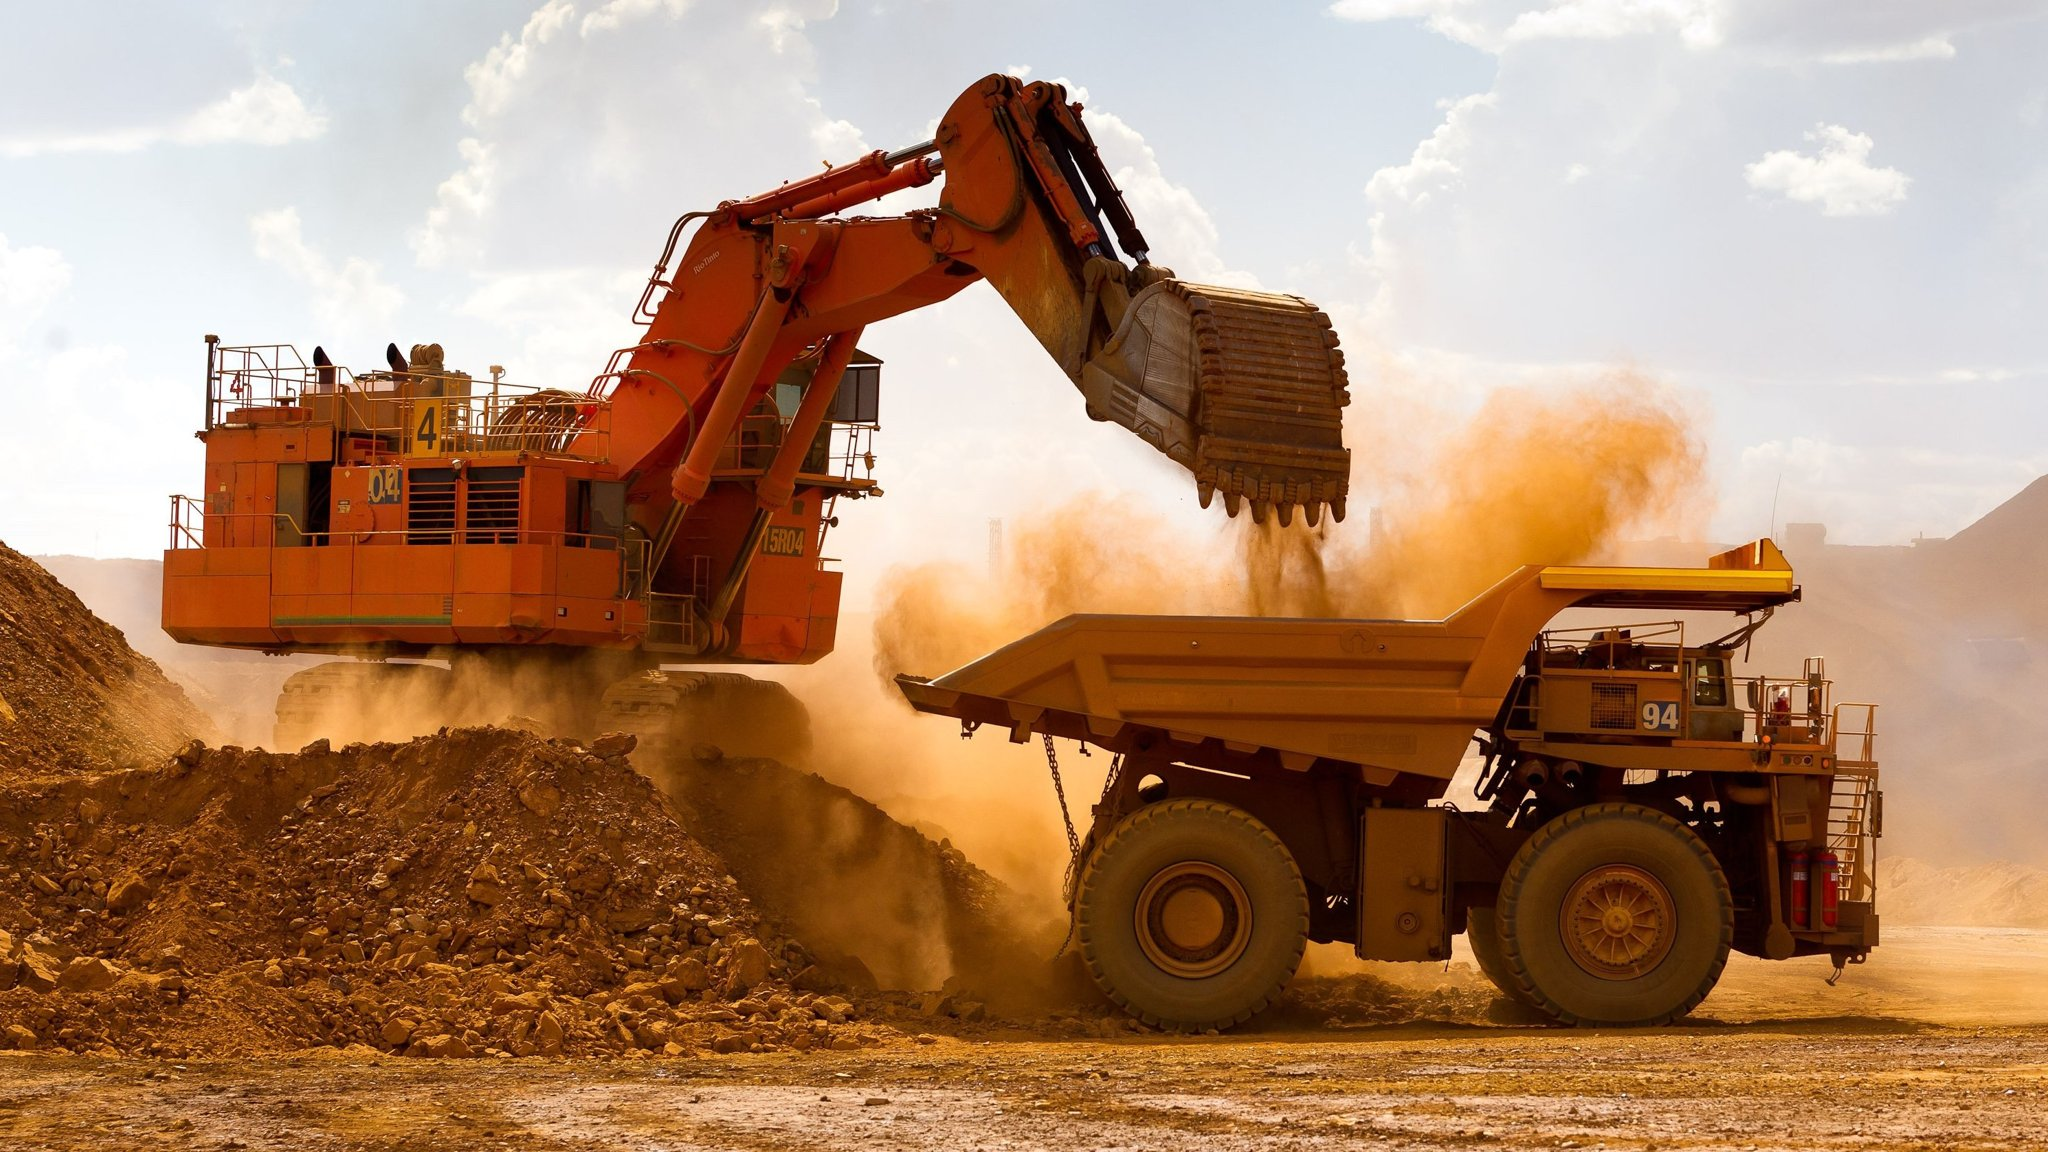 MultiSkilled Excavator Production Mining Operator Newcastle-iMINCO.net Mining Information